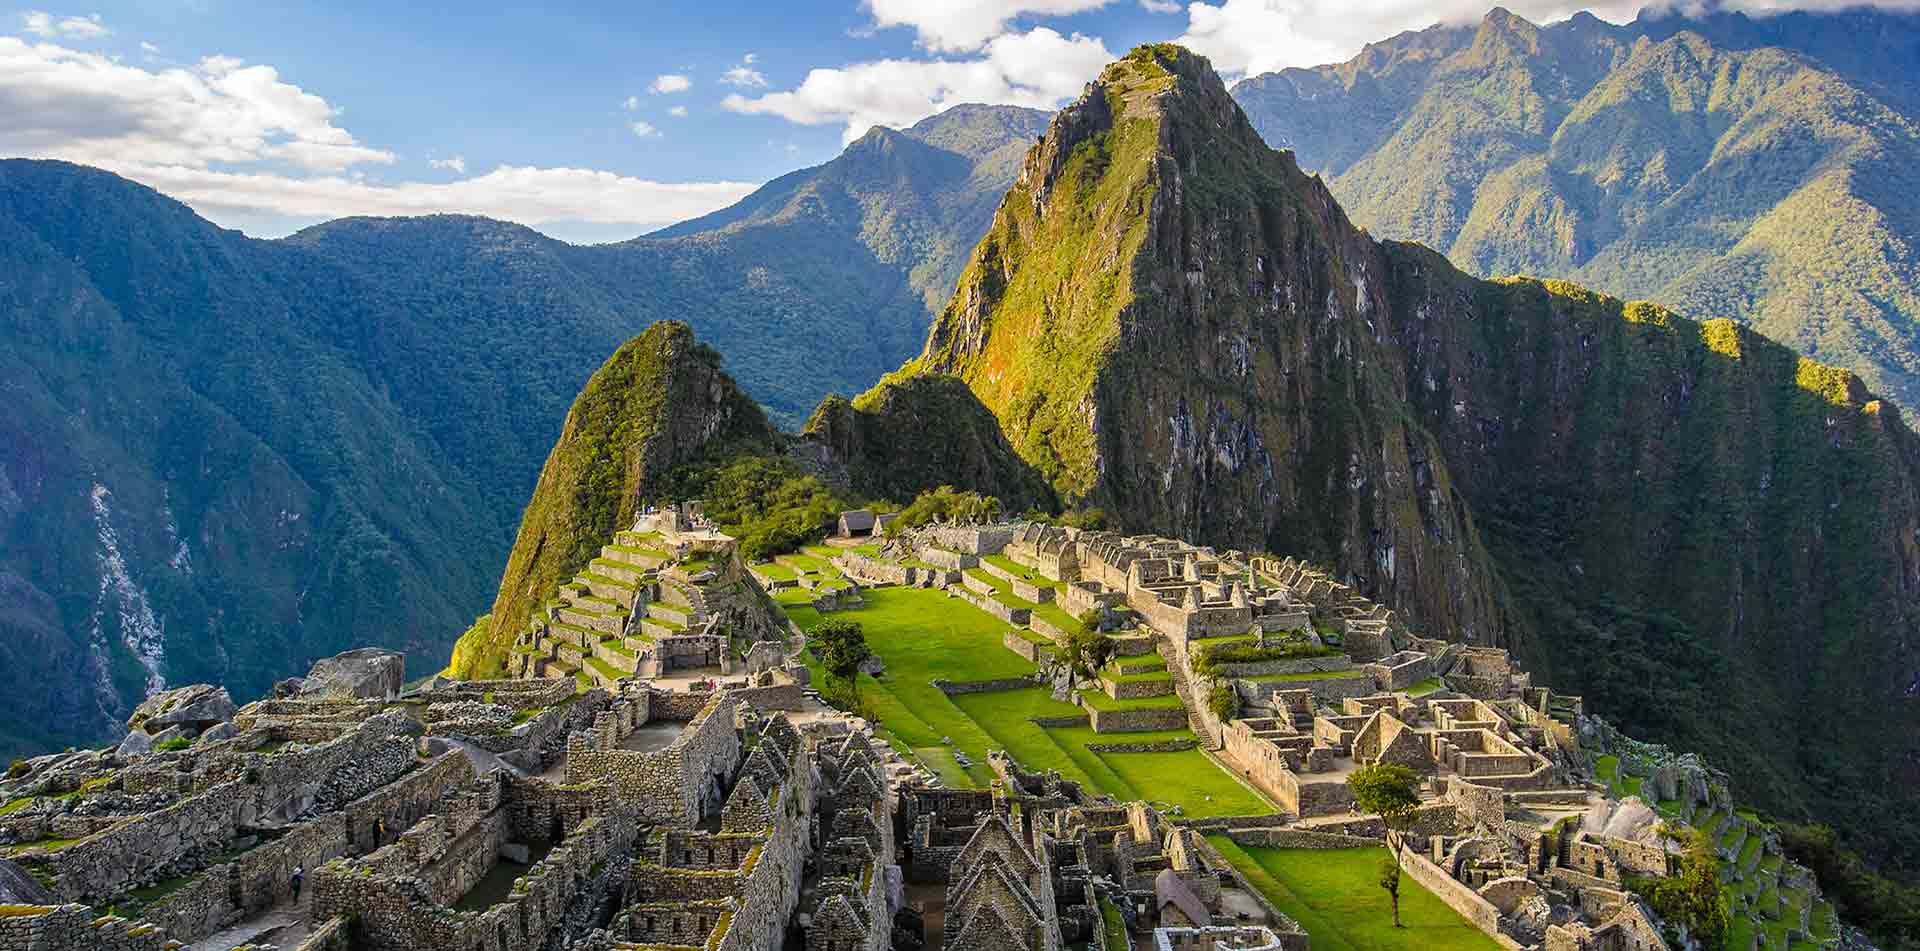 South America Peru scenic Andes Mountains spectacular Machu Picchu ancient Inca ruins - luxury vacation destinations